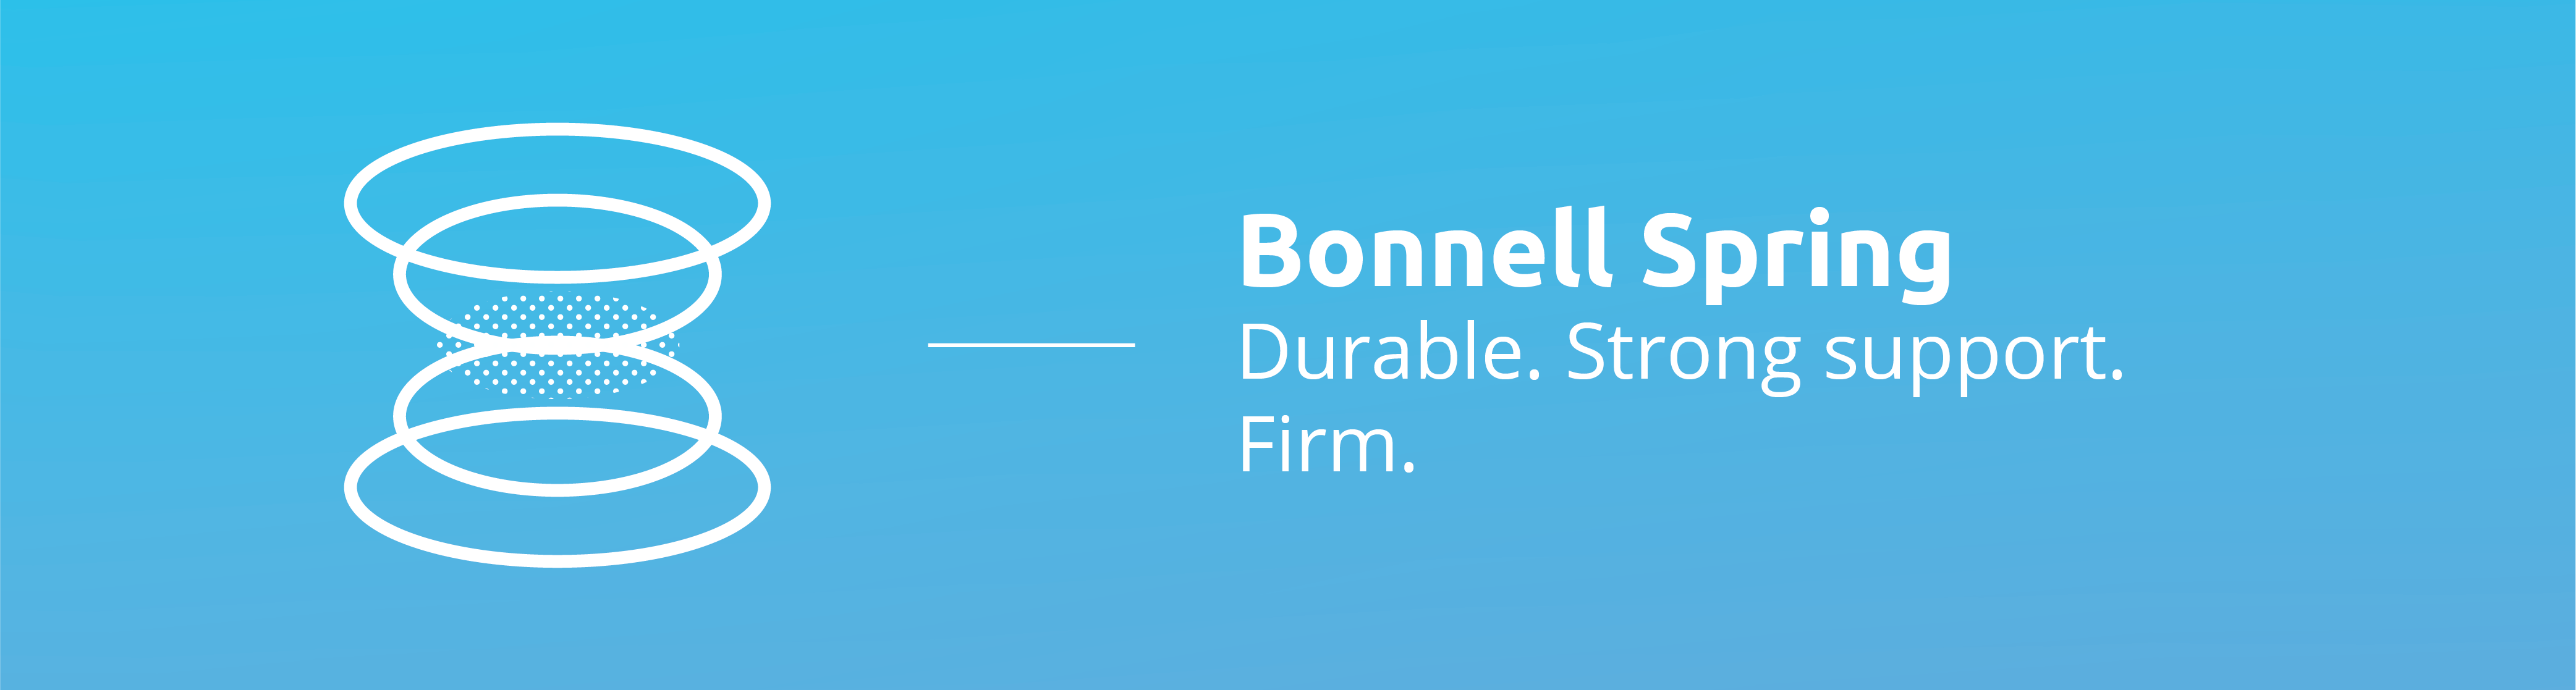 Bonnell Spring Infographic